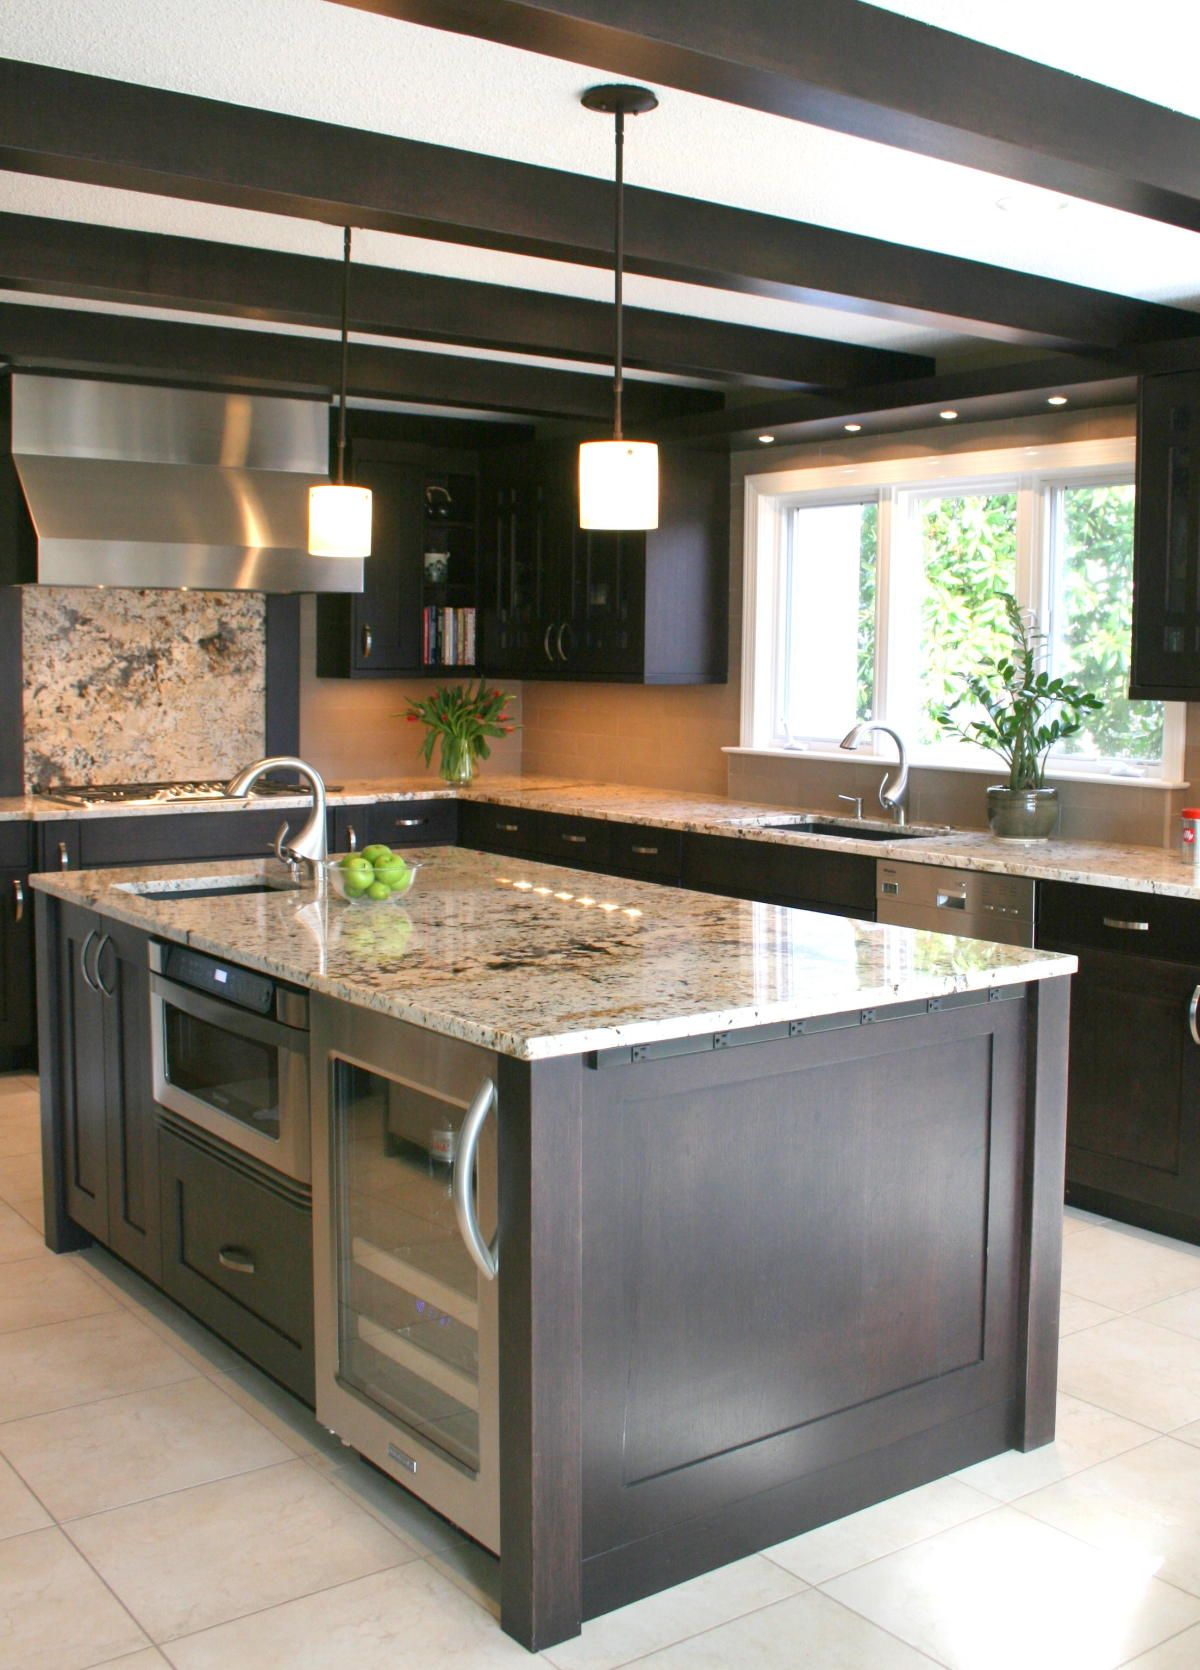 The working island appliances in the kitchen island for Kitchen designs island